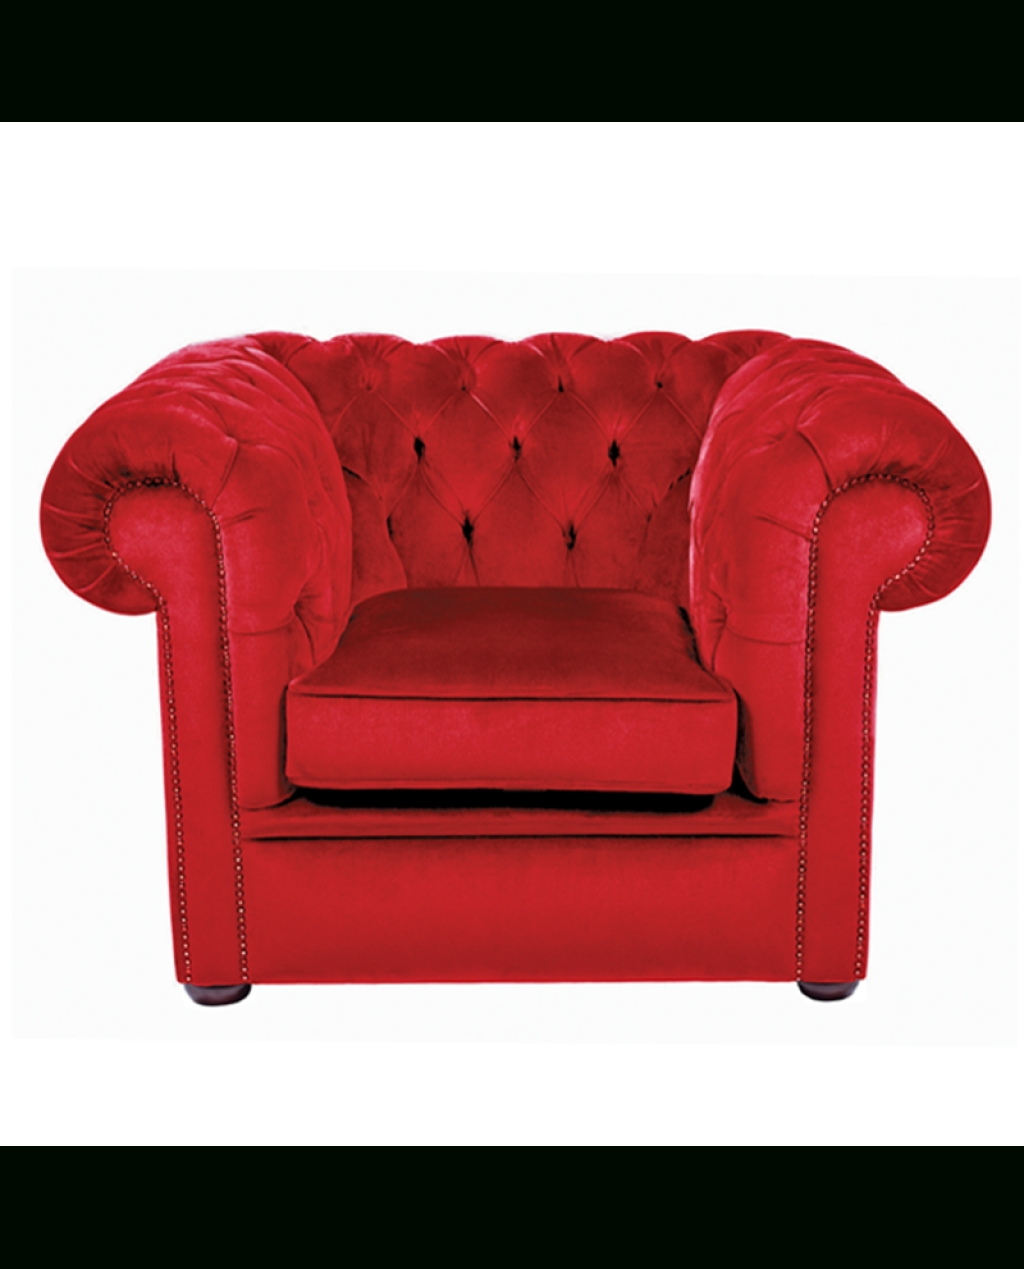 Search – Chesterfield Throughout Red Chesterfield Chairs (Image 16 of 20)